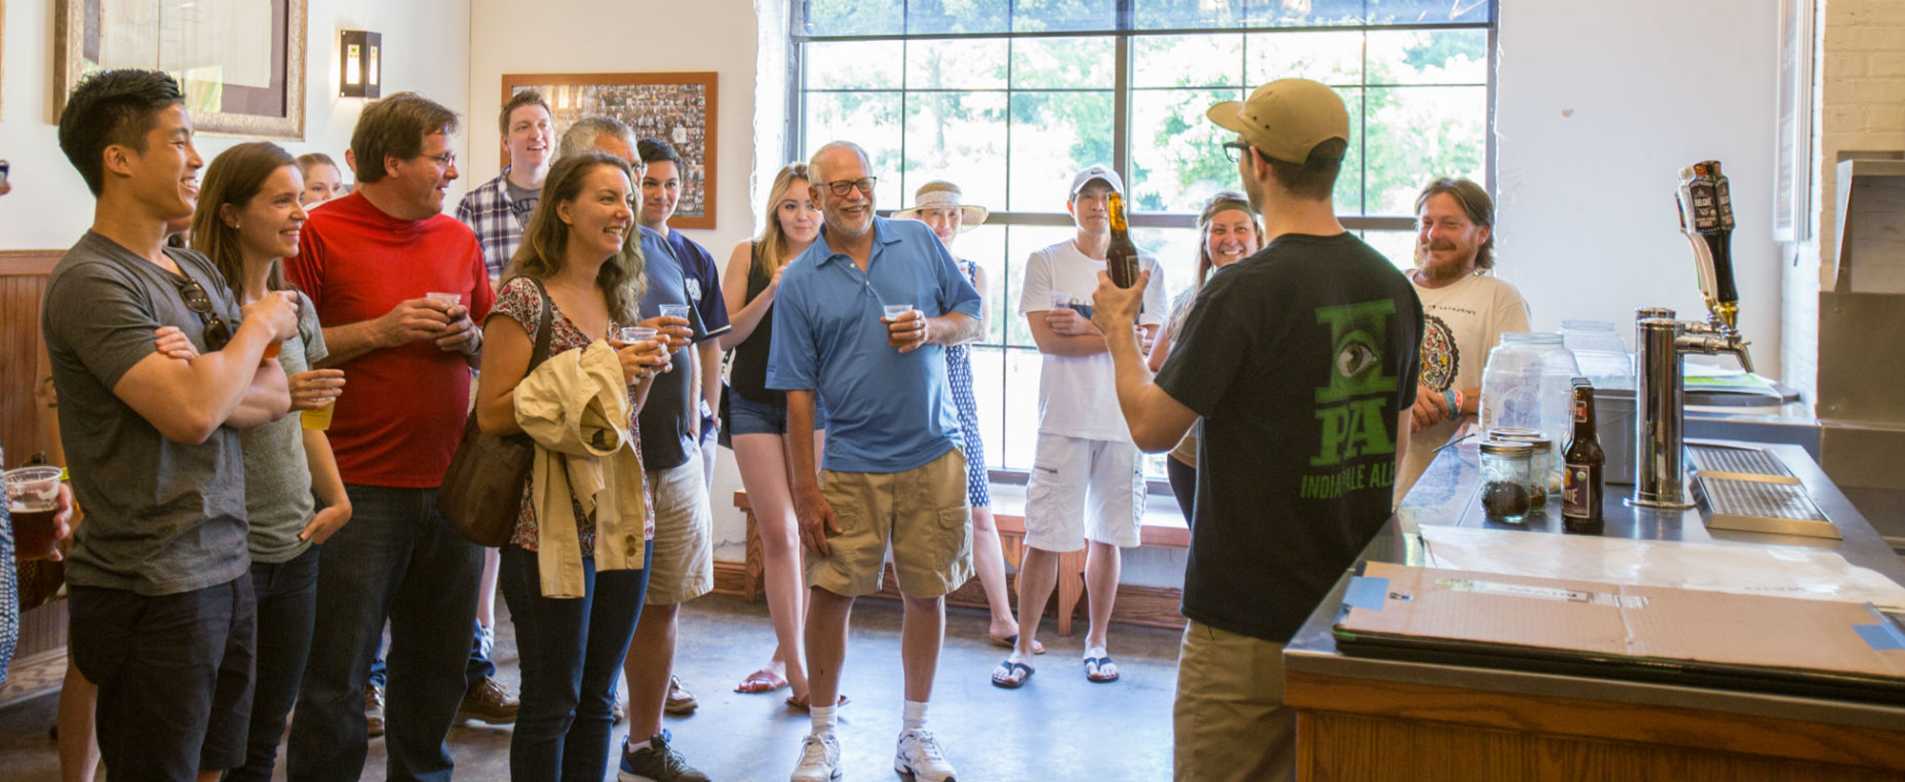 Tasting Room and Tour at Lakefront Brewery